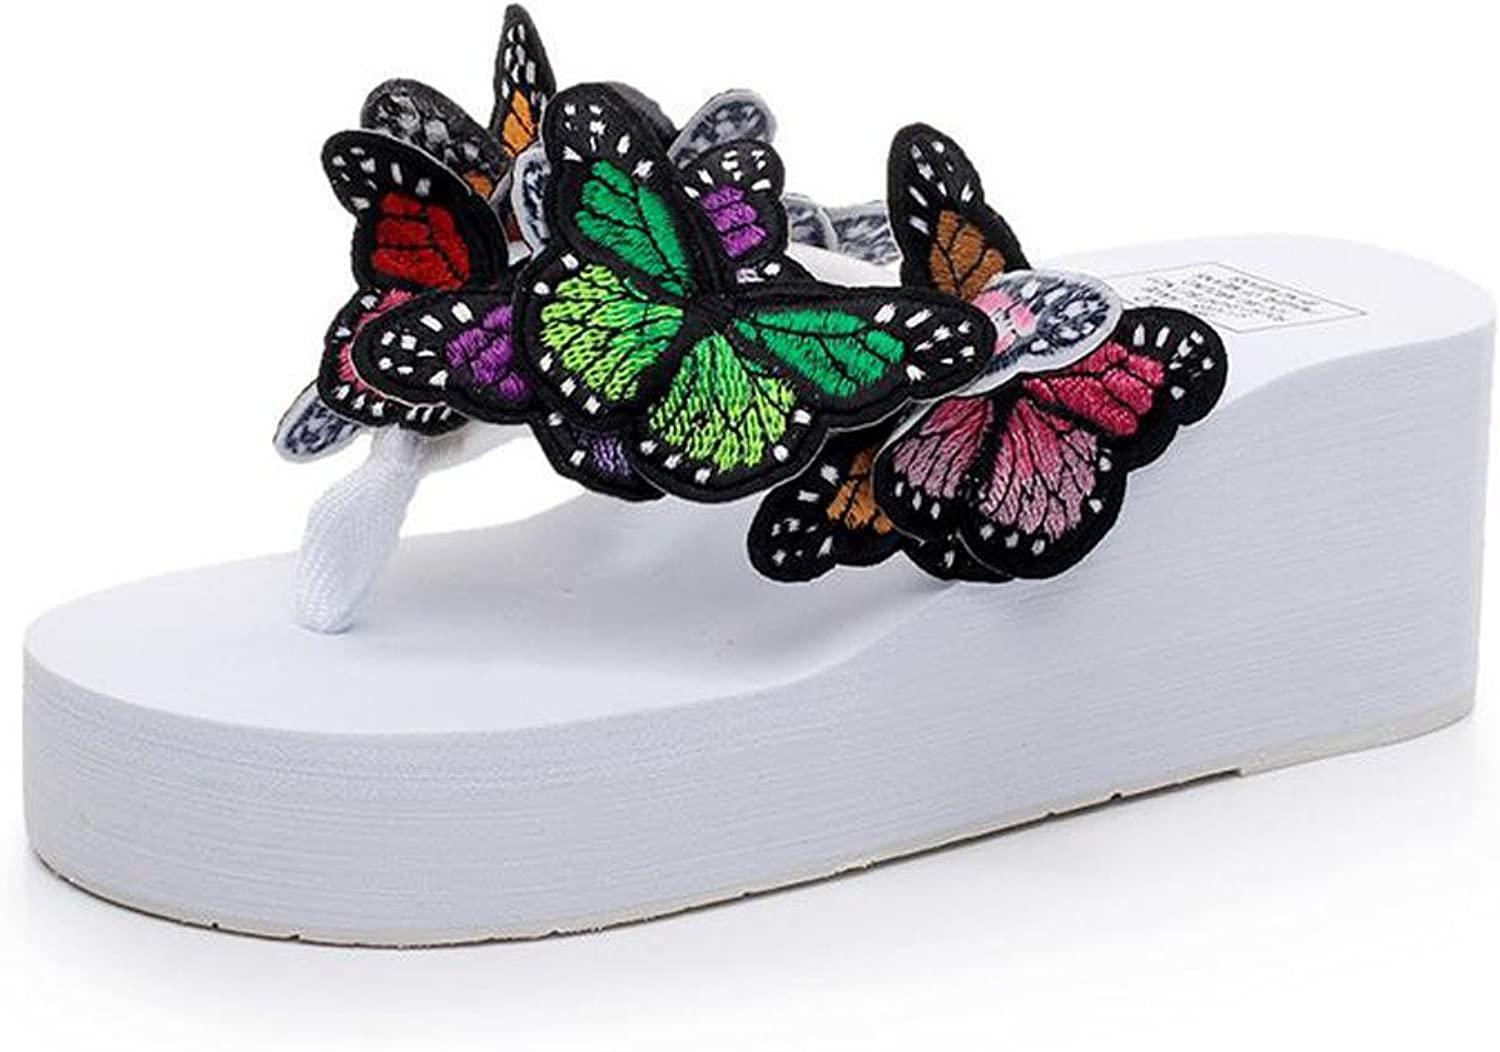 Women Flip Flops Beautiful Butterfly 6cm Heel Sandals Non-slip Cool Sandals Fashion Shopping Comfort Sandals (Black bluee White) ( color   White , Size   36 )